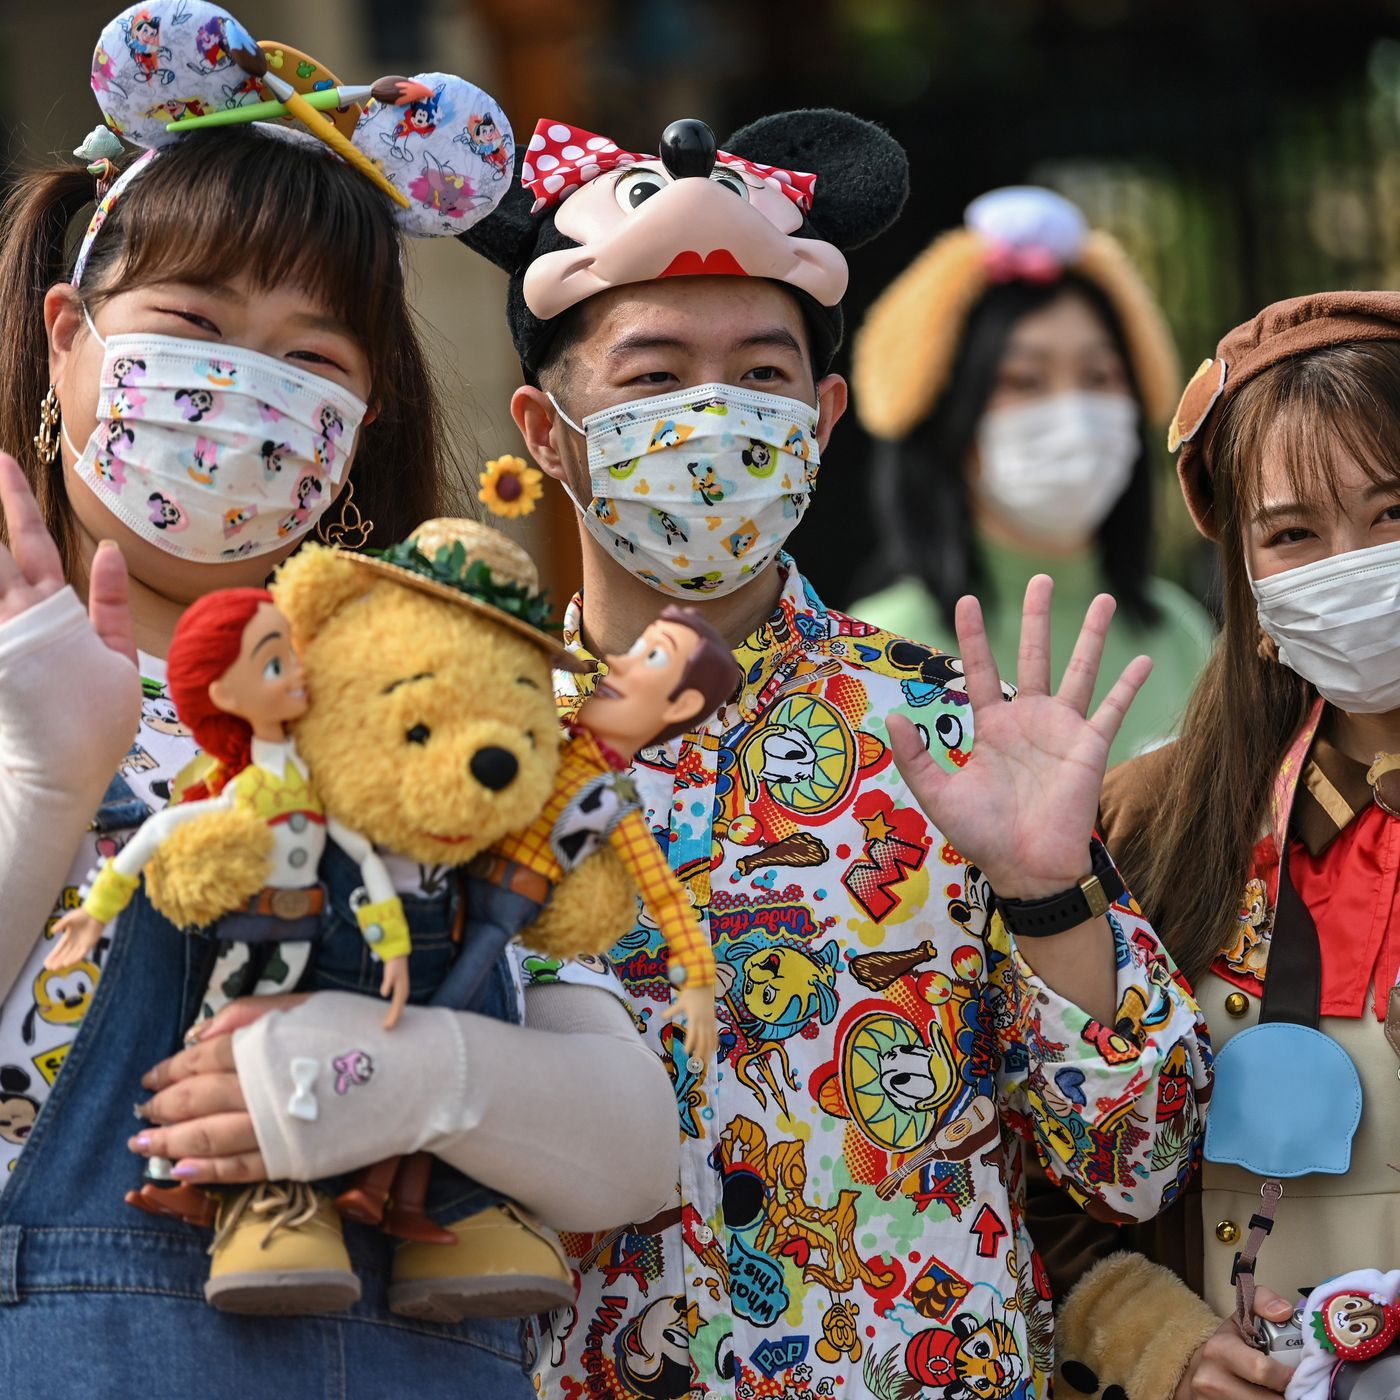 Shanghai Disneyland reopens with mandatory face masks and social distancing - The Verge